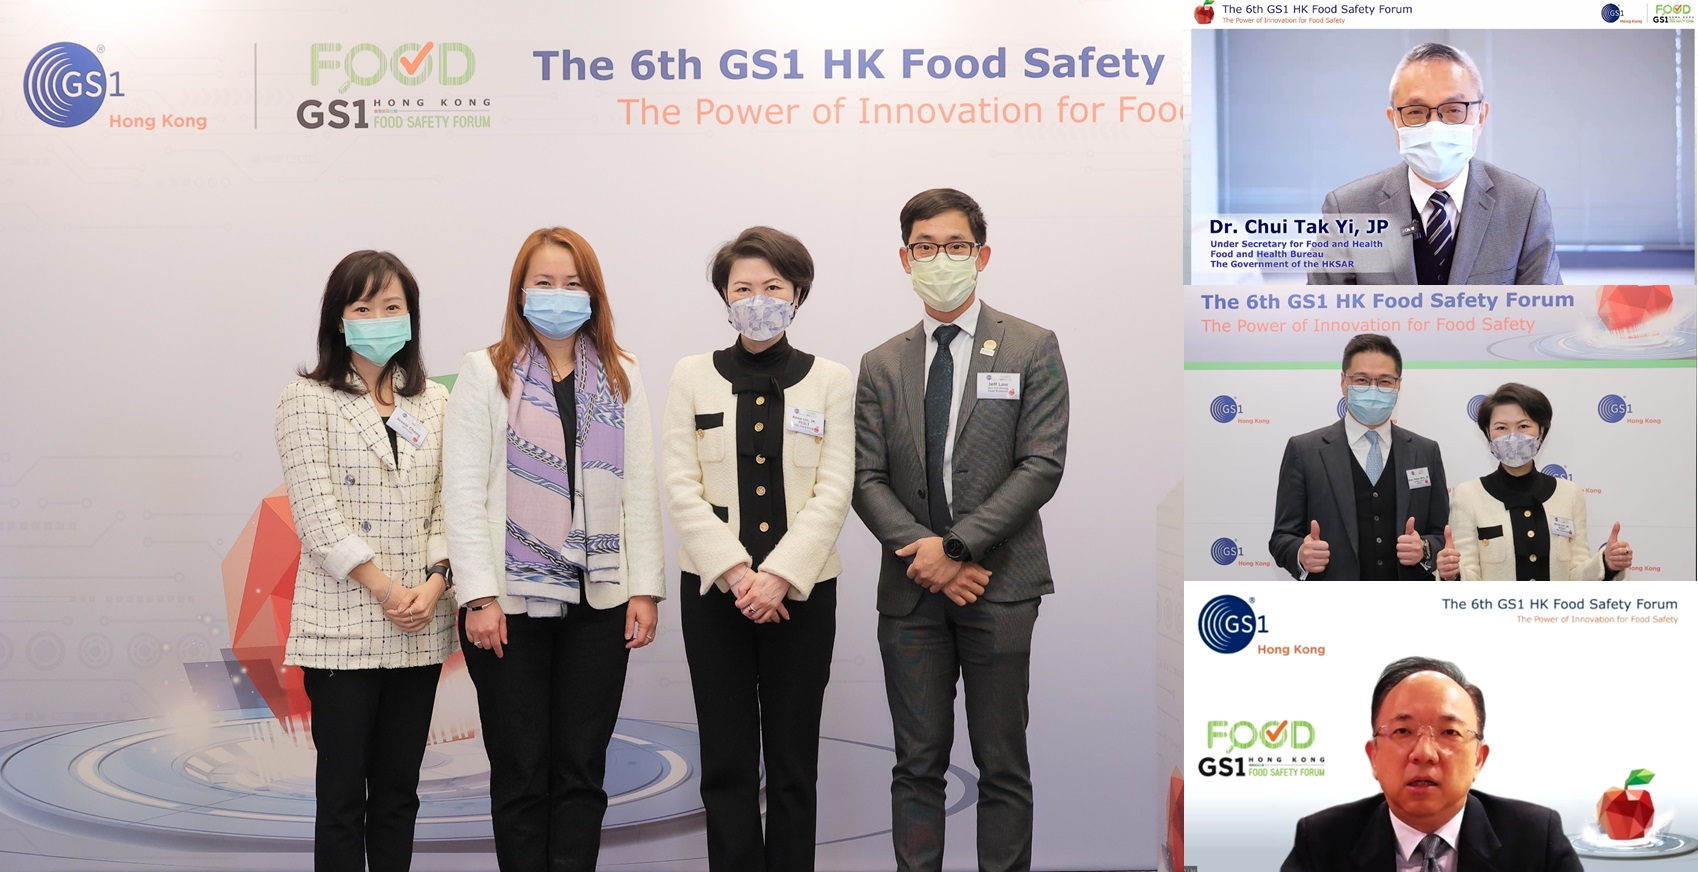 Global Industry Leaders Highlighted Food Safety Issues in Times of Pandemic at the 6th Food Safety Forum